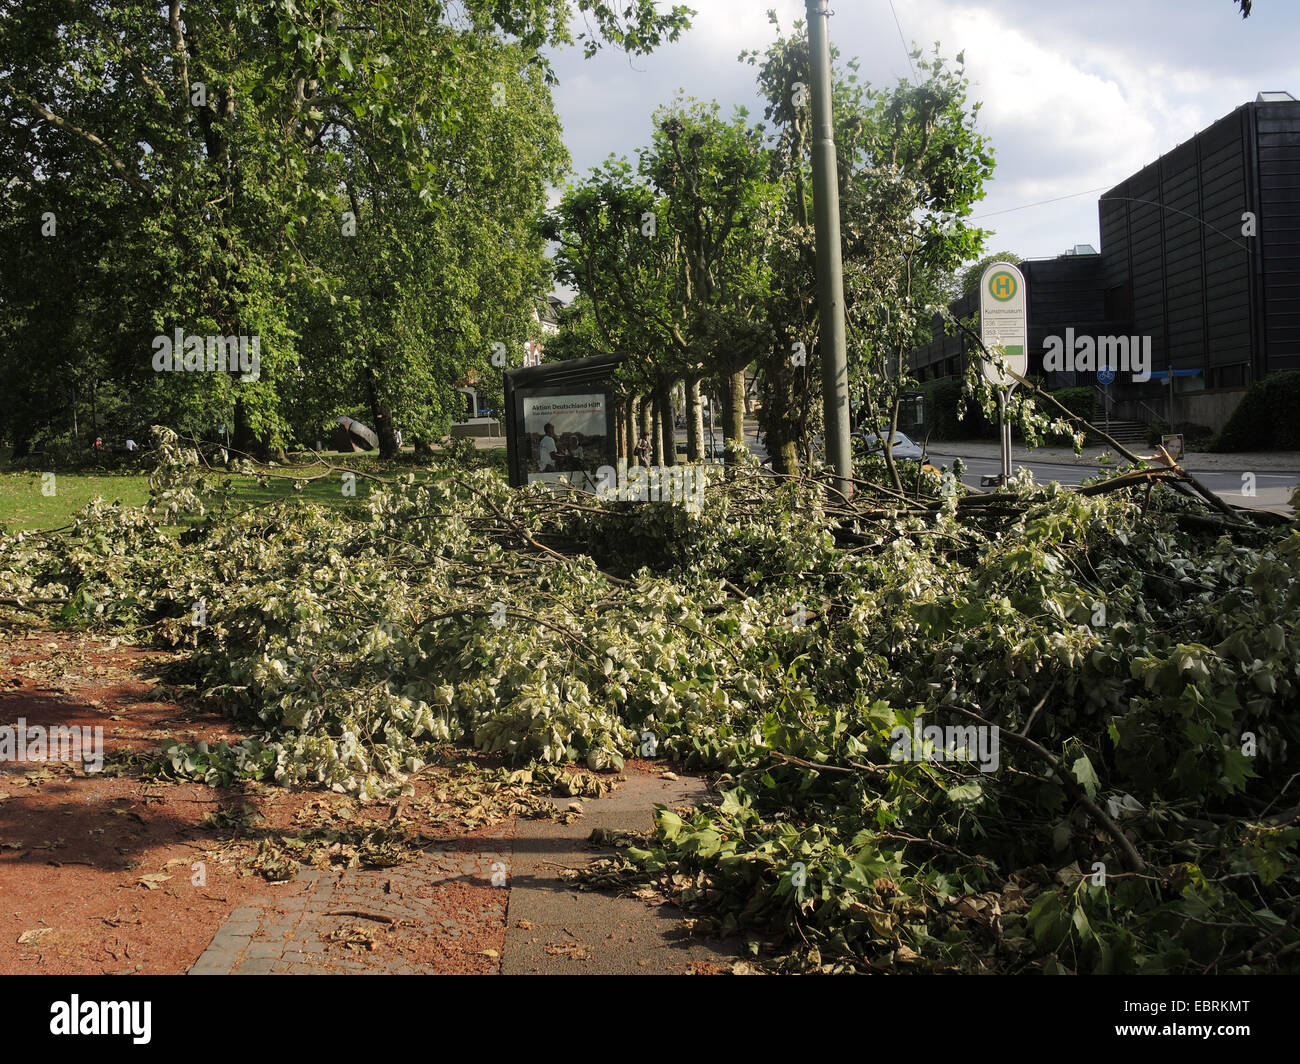 street with busstop after the storm front Ela at 2014-06-09, Germany, North Rhine-Westphalia, Ruhr Area, Bochum - Stock Image